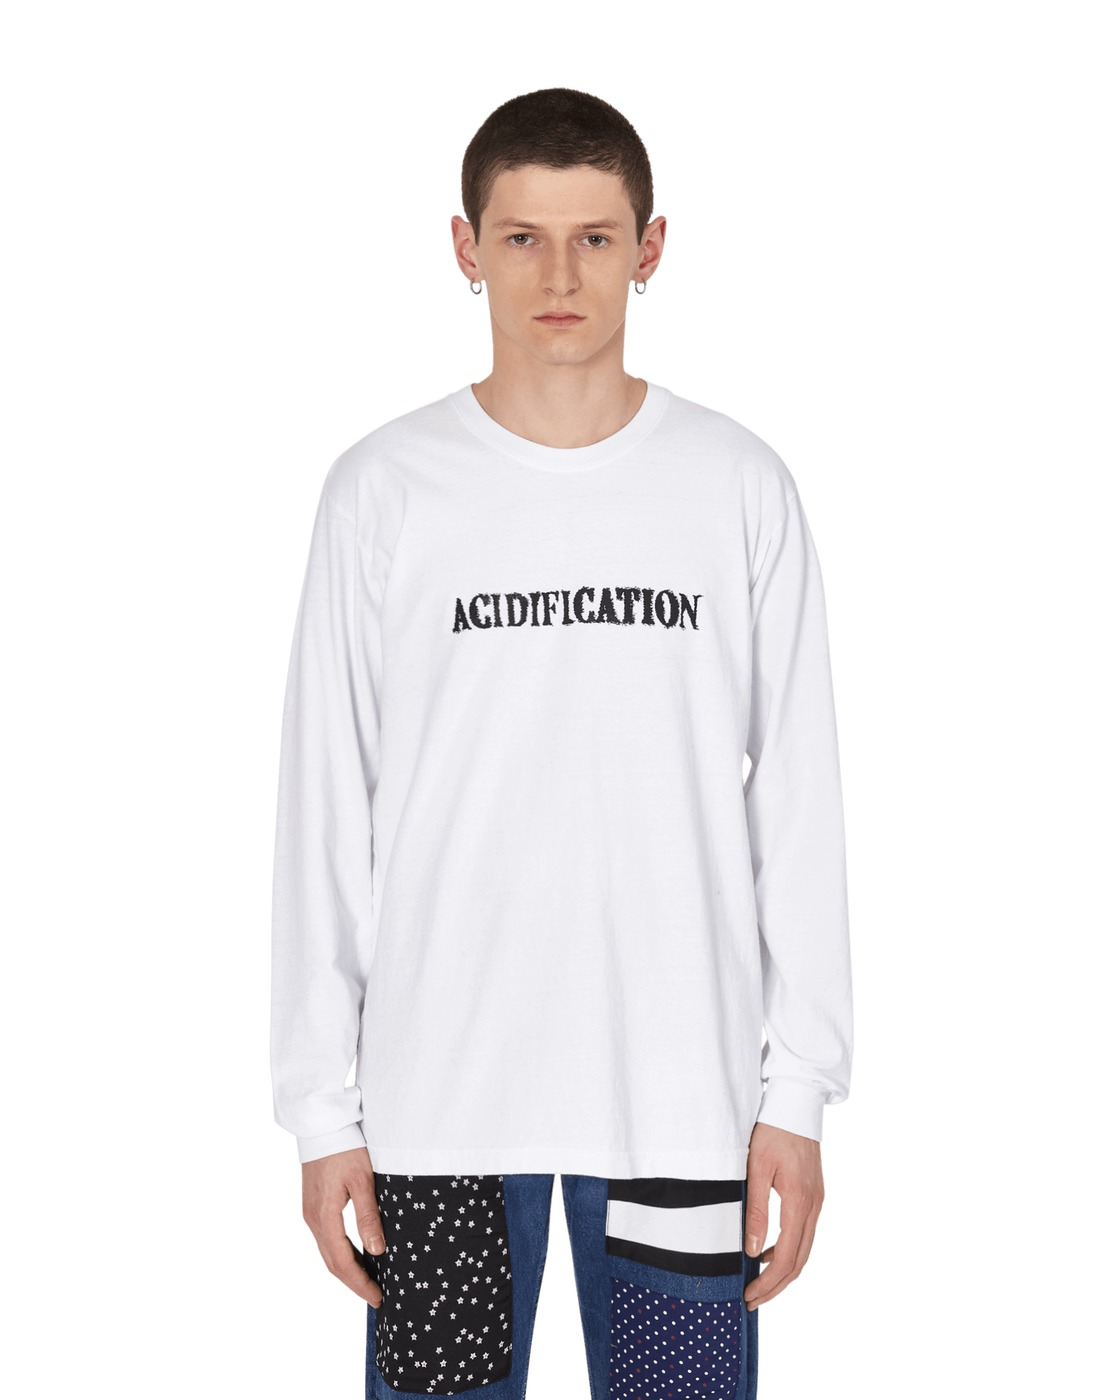 Eden Power Corp Accidification Recycled Longsleeve T Shirt White